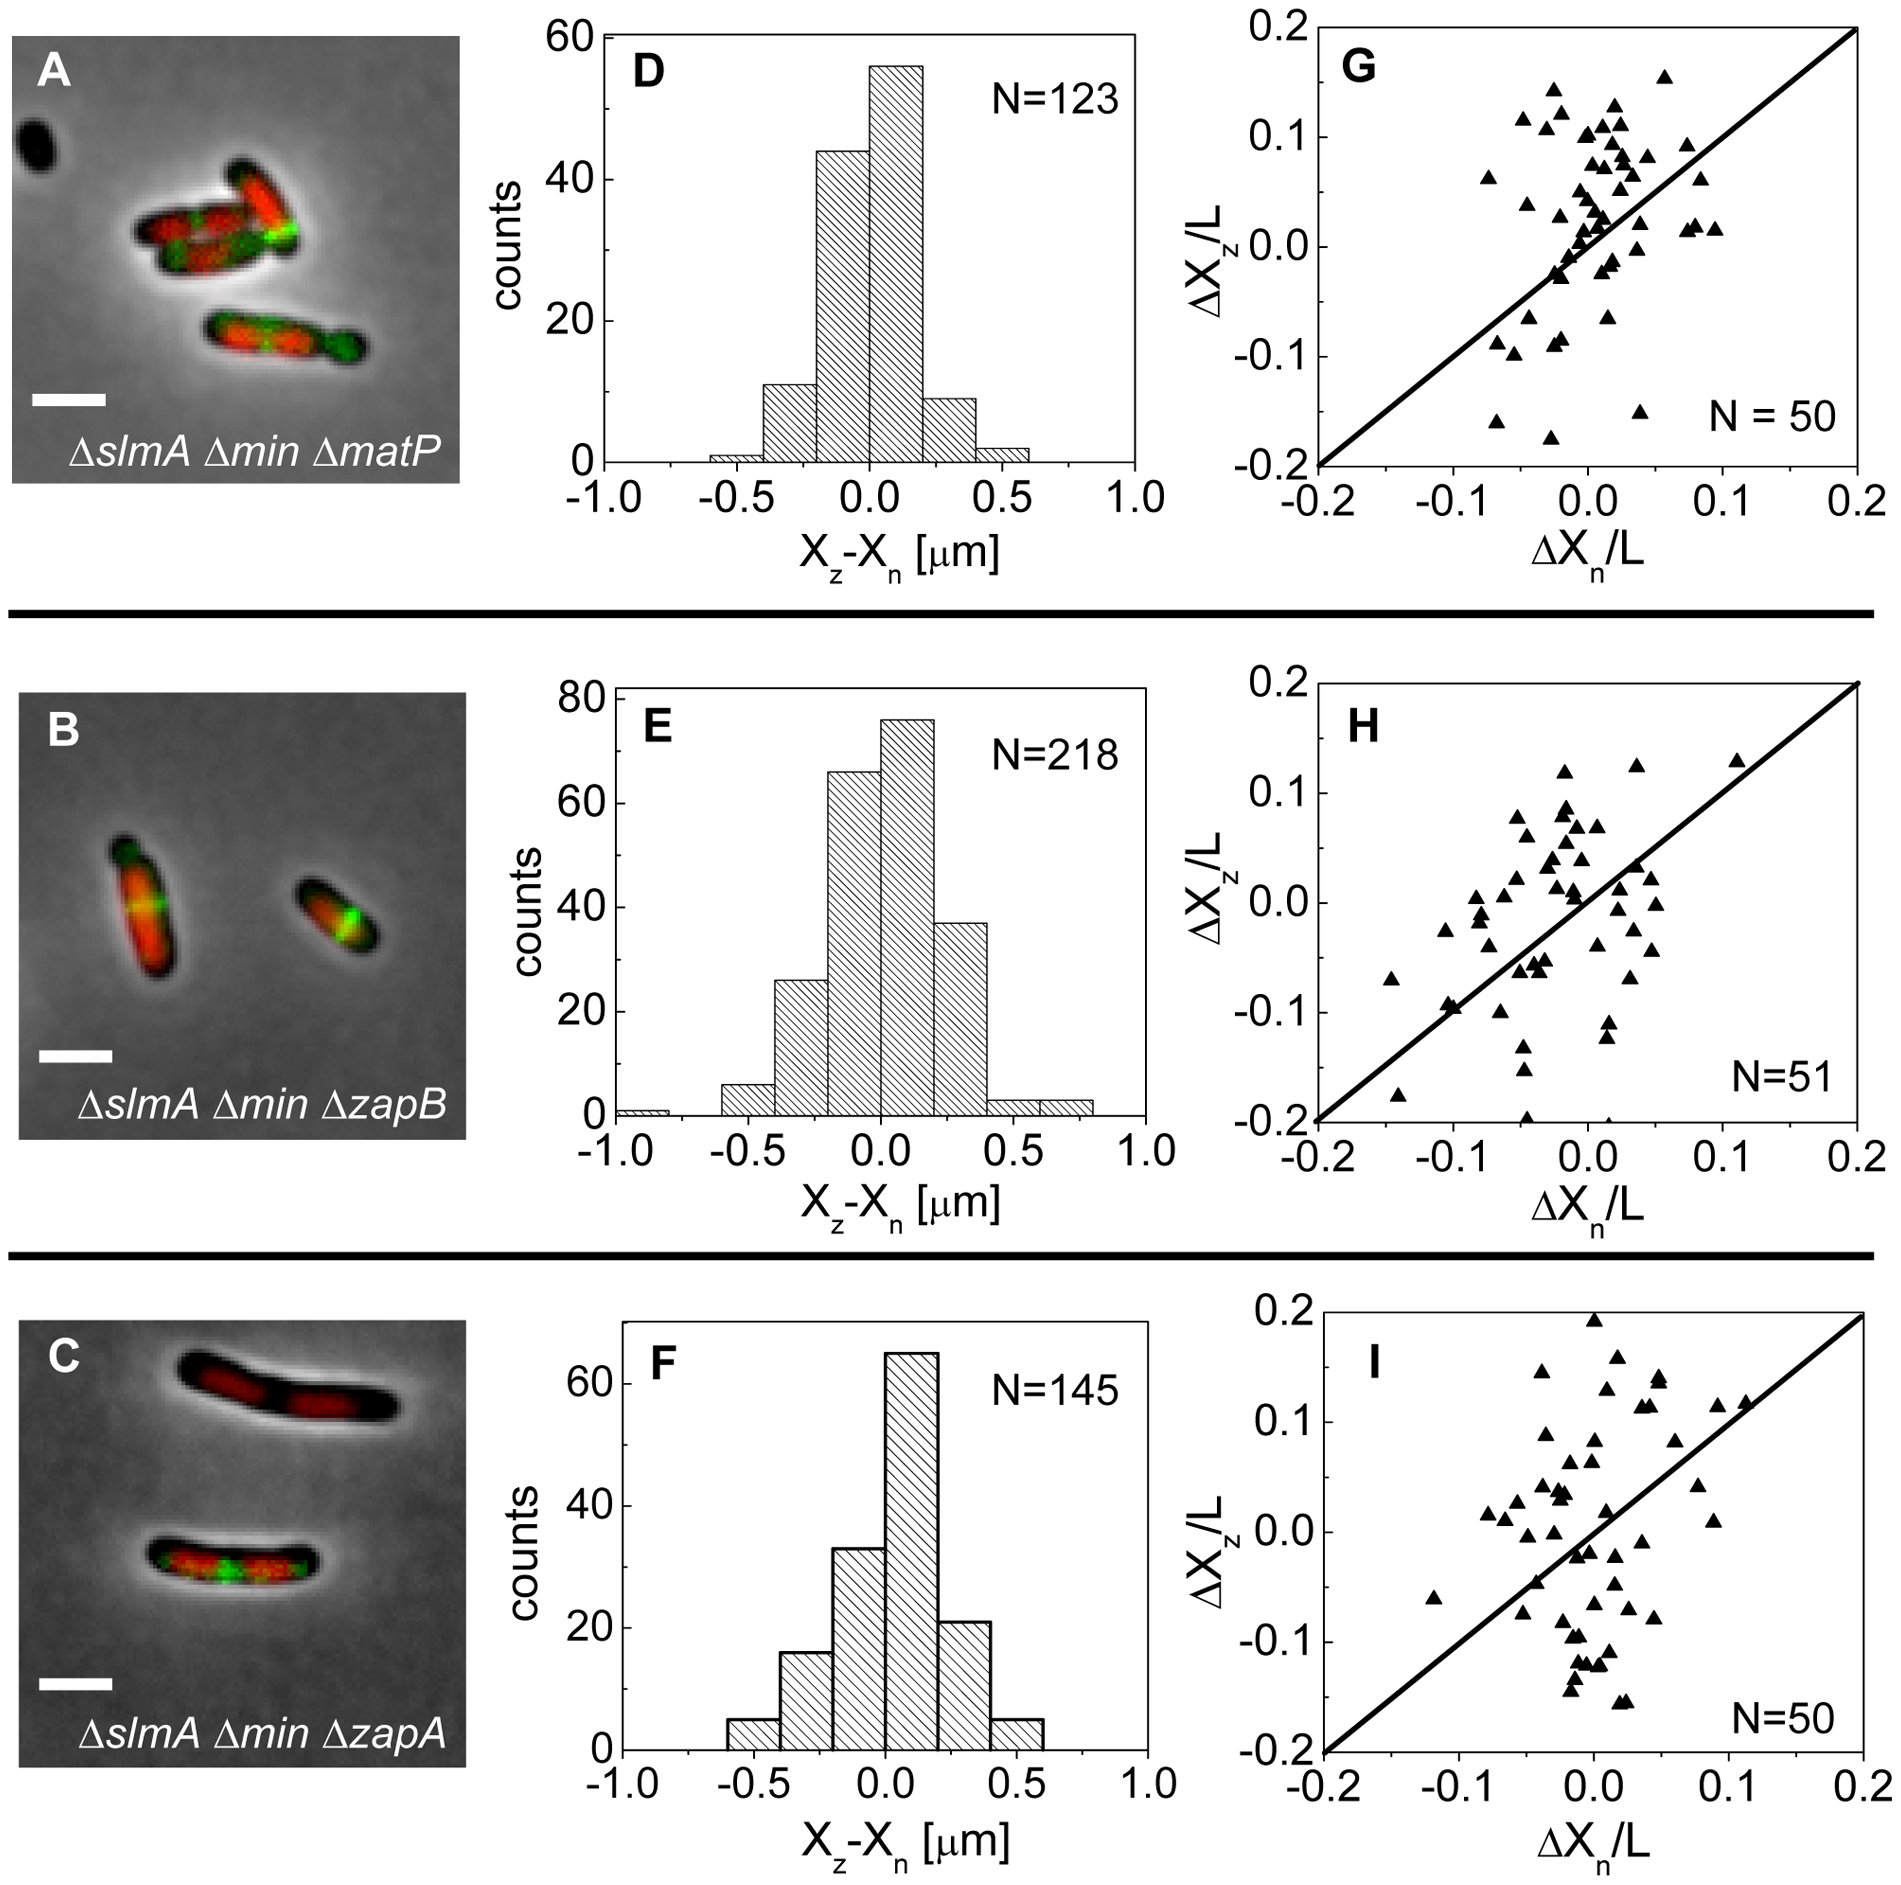 Positioning of the Z-rings relative to the cell and nucleoid centers in triple deletion strains.